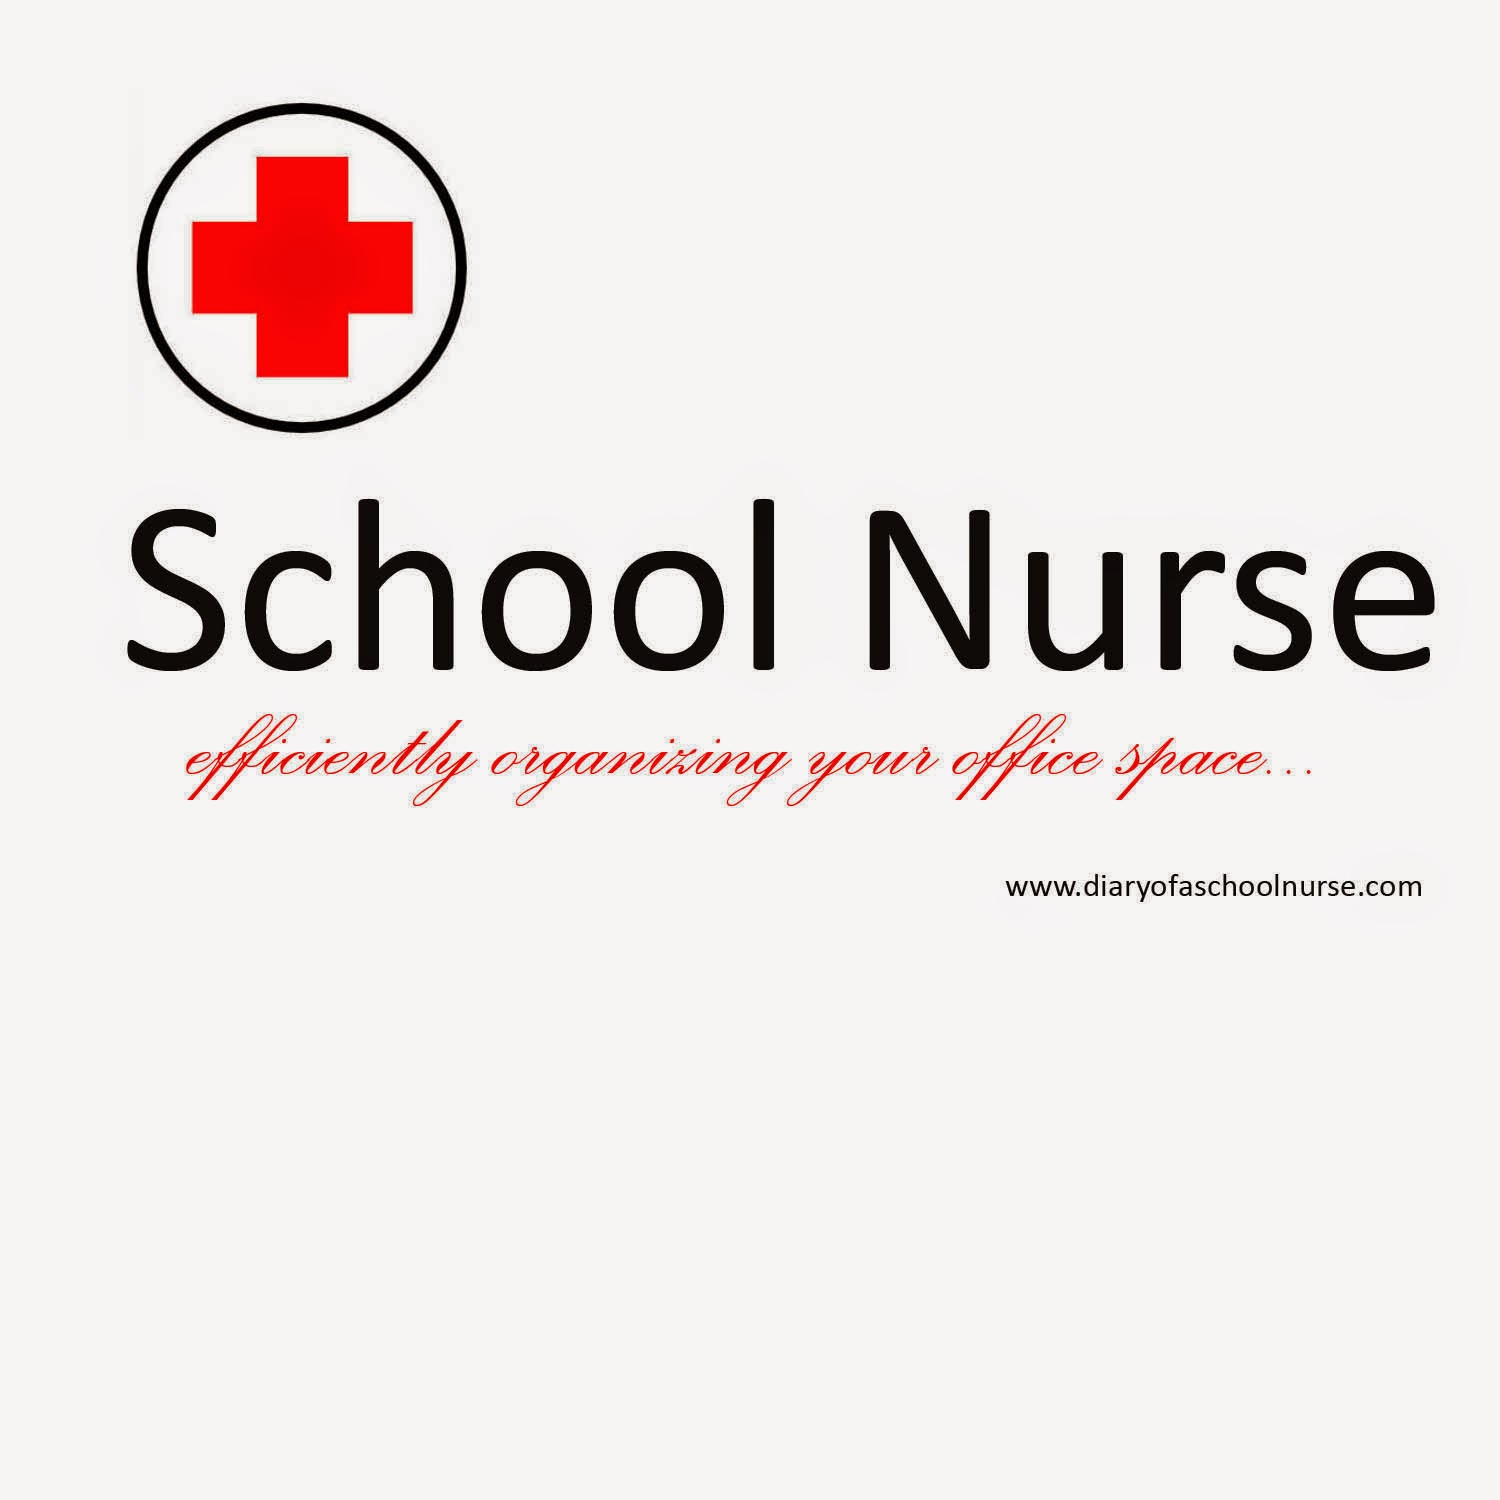 Diary Of A School Nurse: Another Office Tip